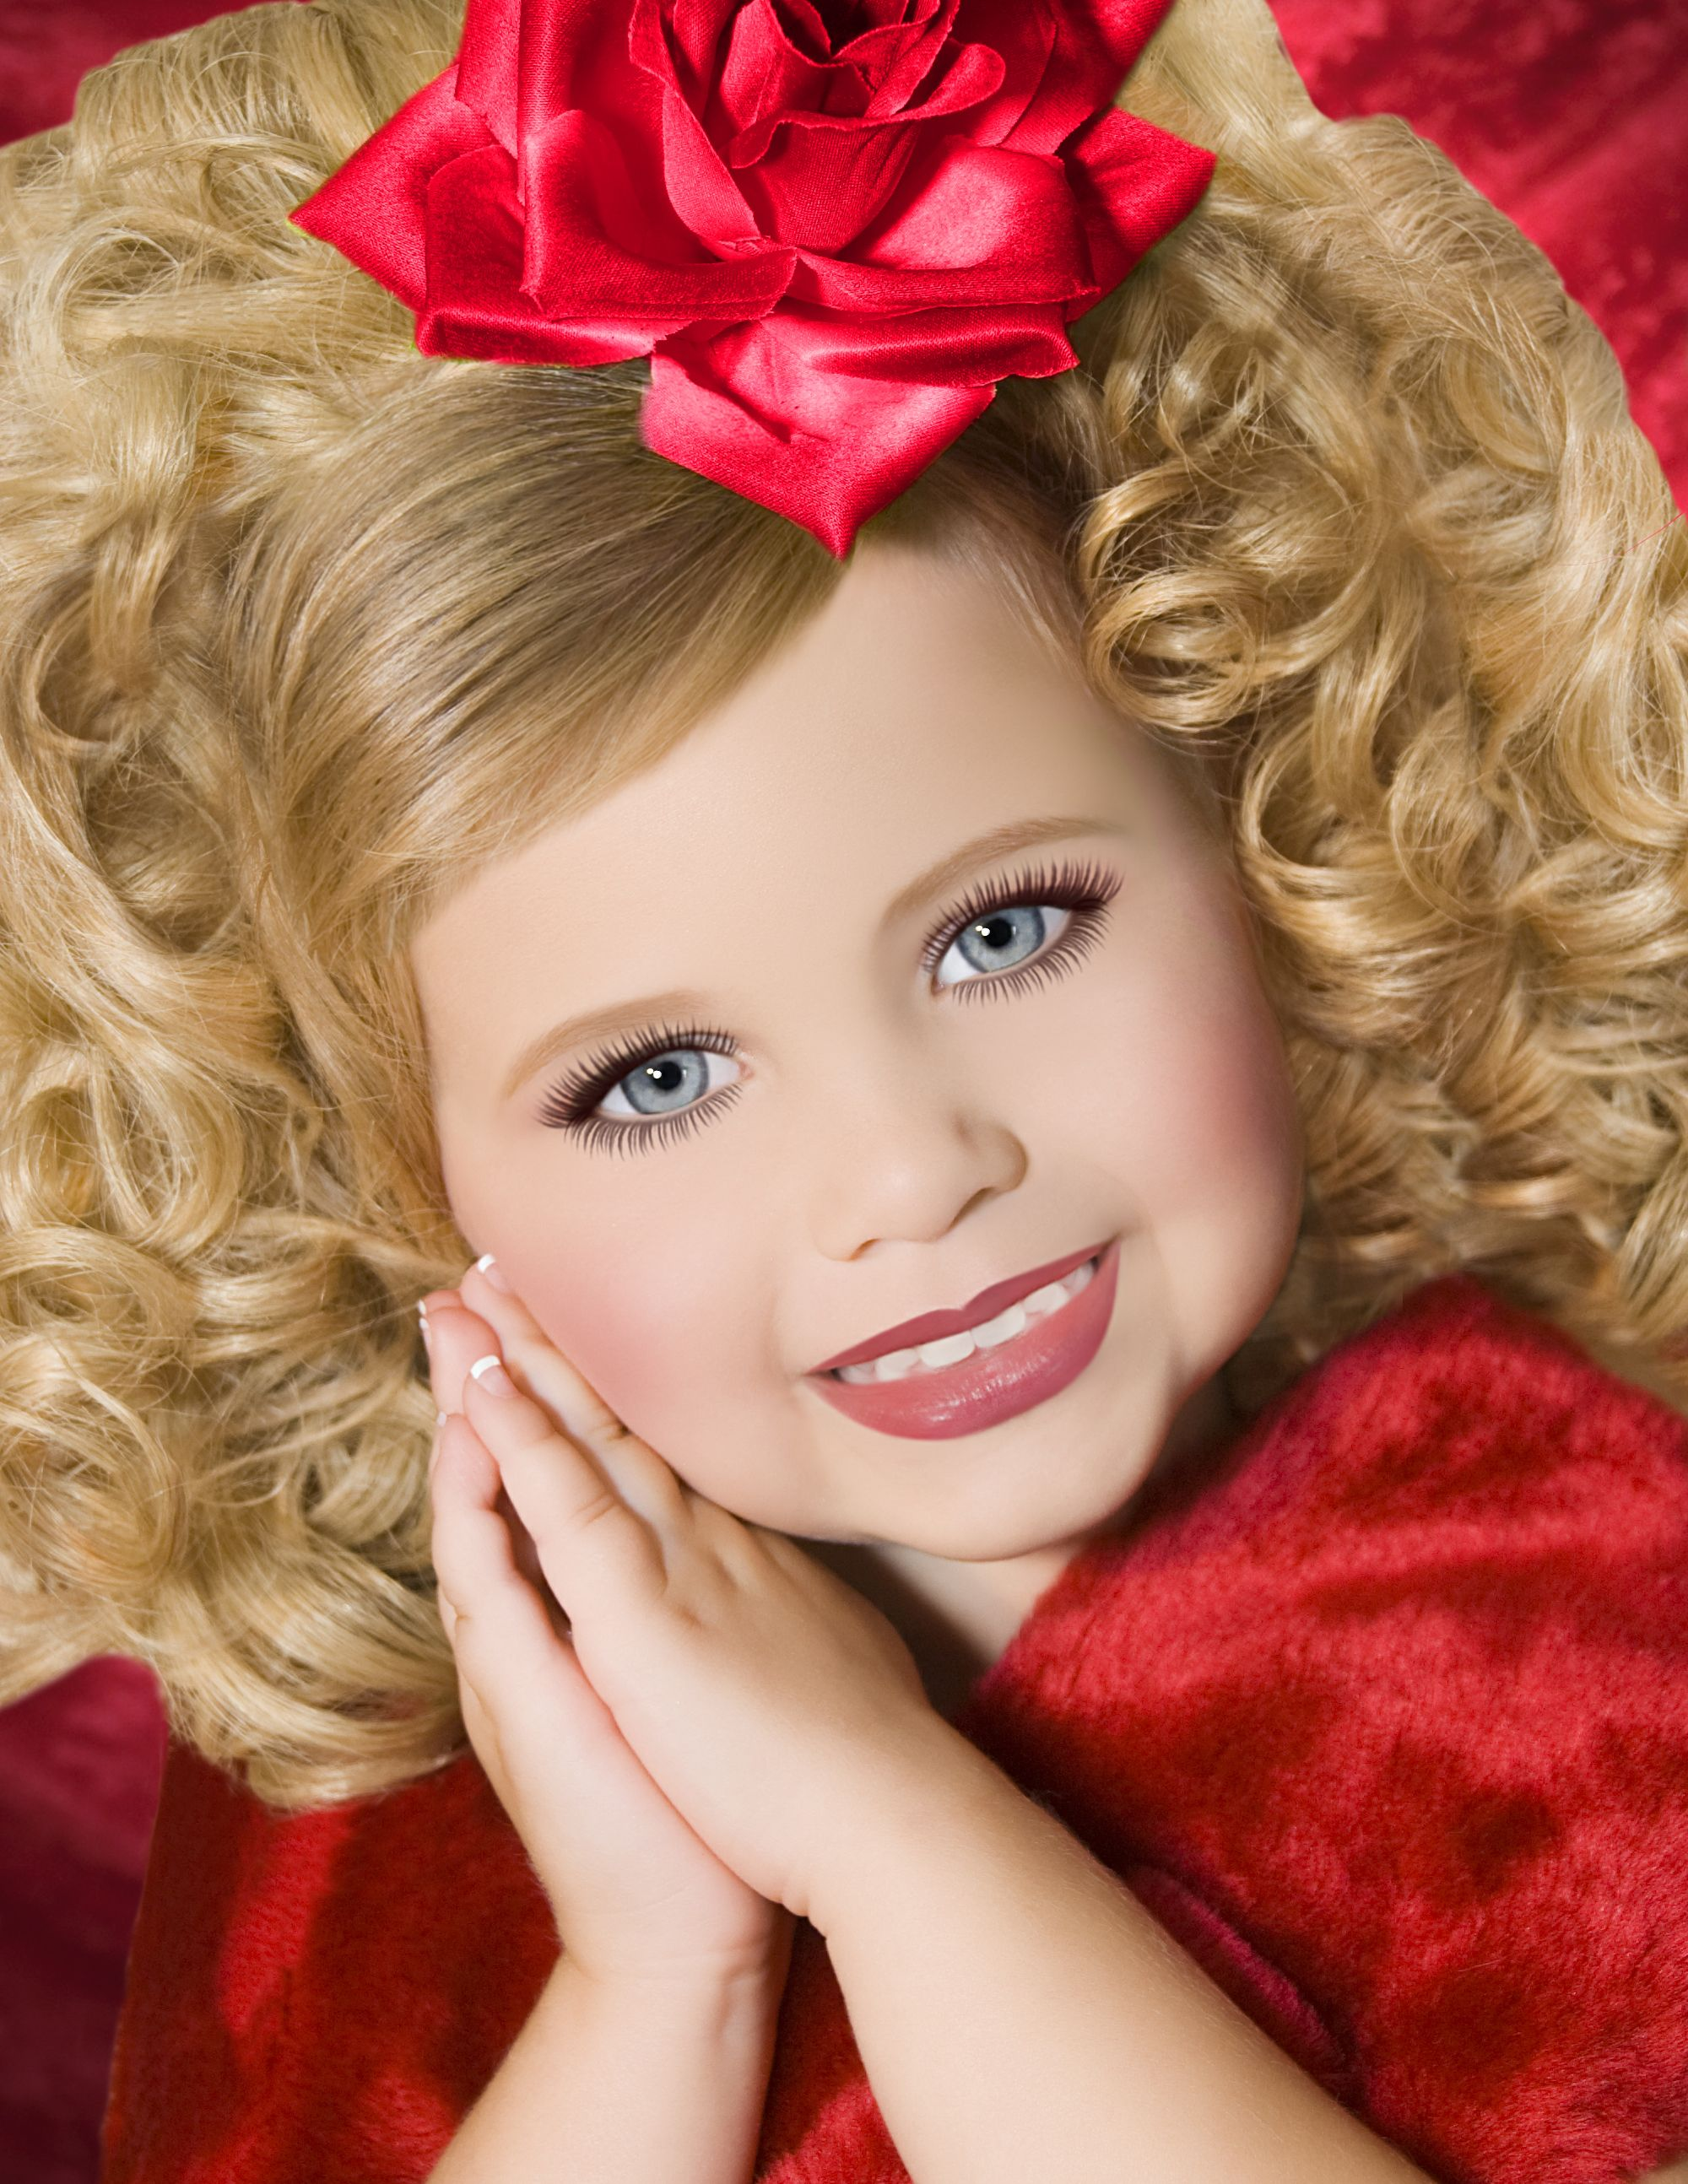 pageant photo toppers, glitz photo shoot sets   pageant hairstyles